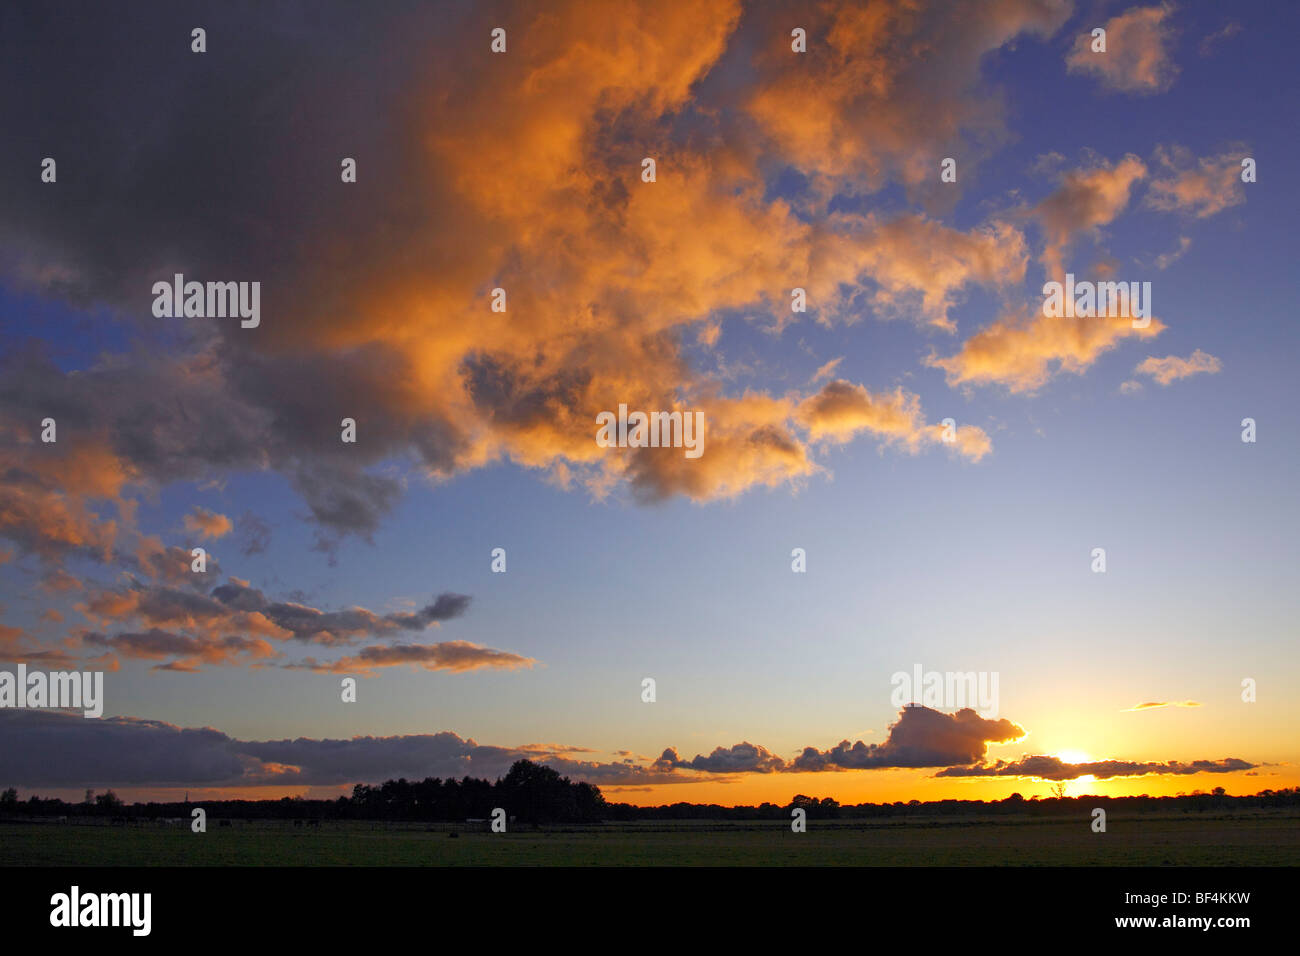 Dramatic sky with clouds illuminated from below by the late evening sun at sunset, landscape in Oberalsterniederung - Stock Image